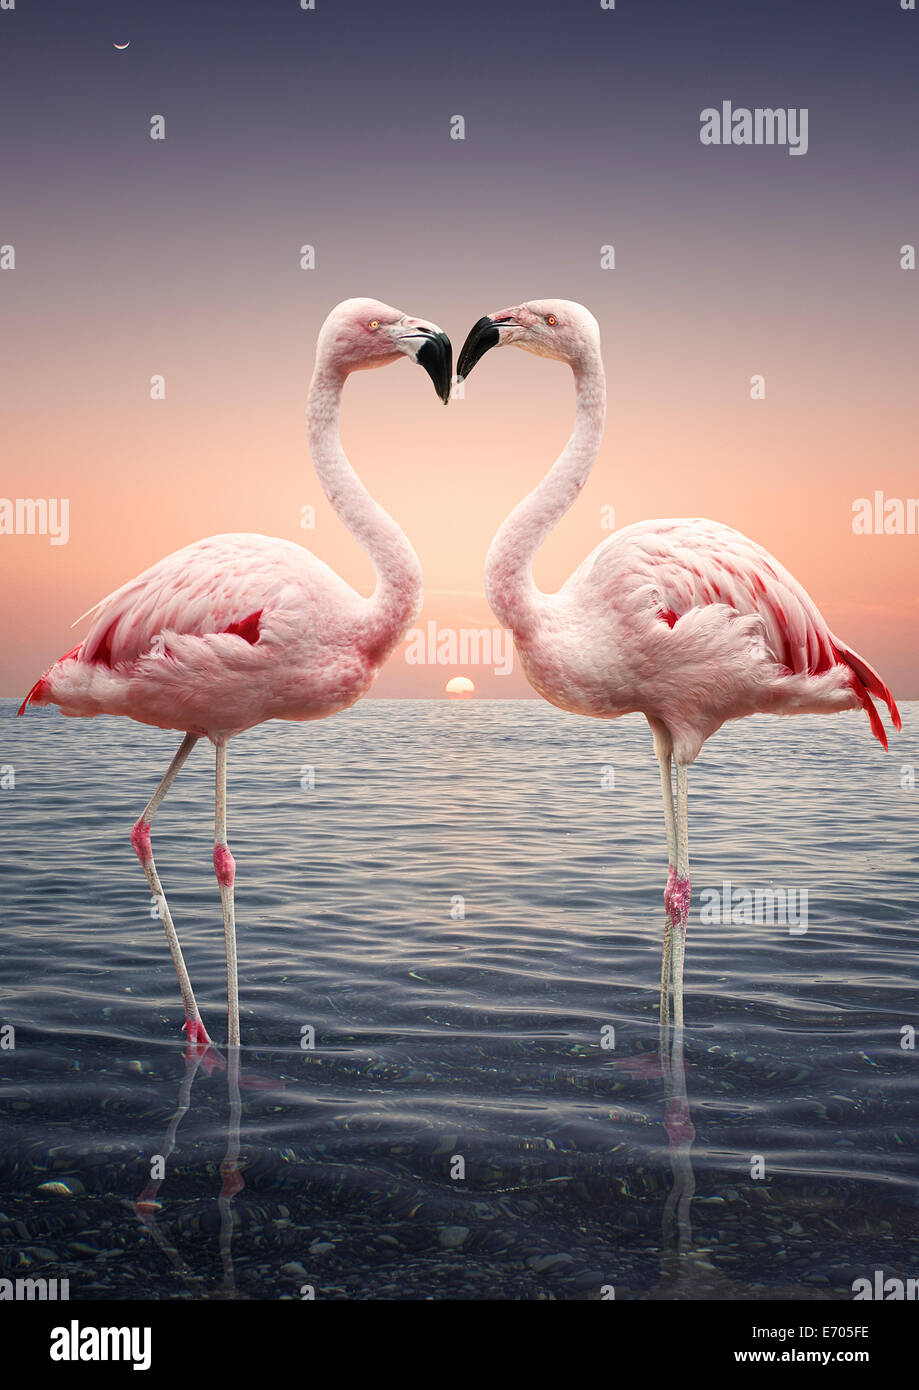 Portrait of two pink flamingoes standing face to face in sea at sunset - Stock Image